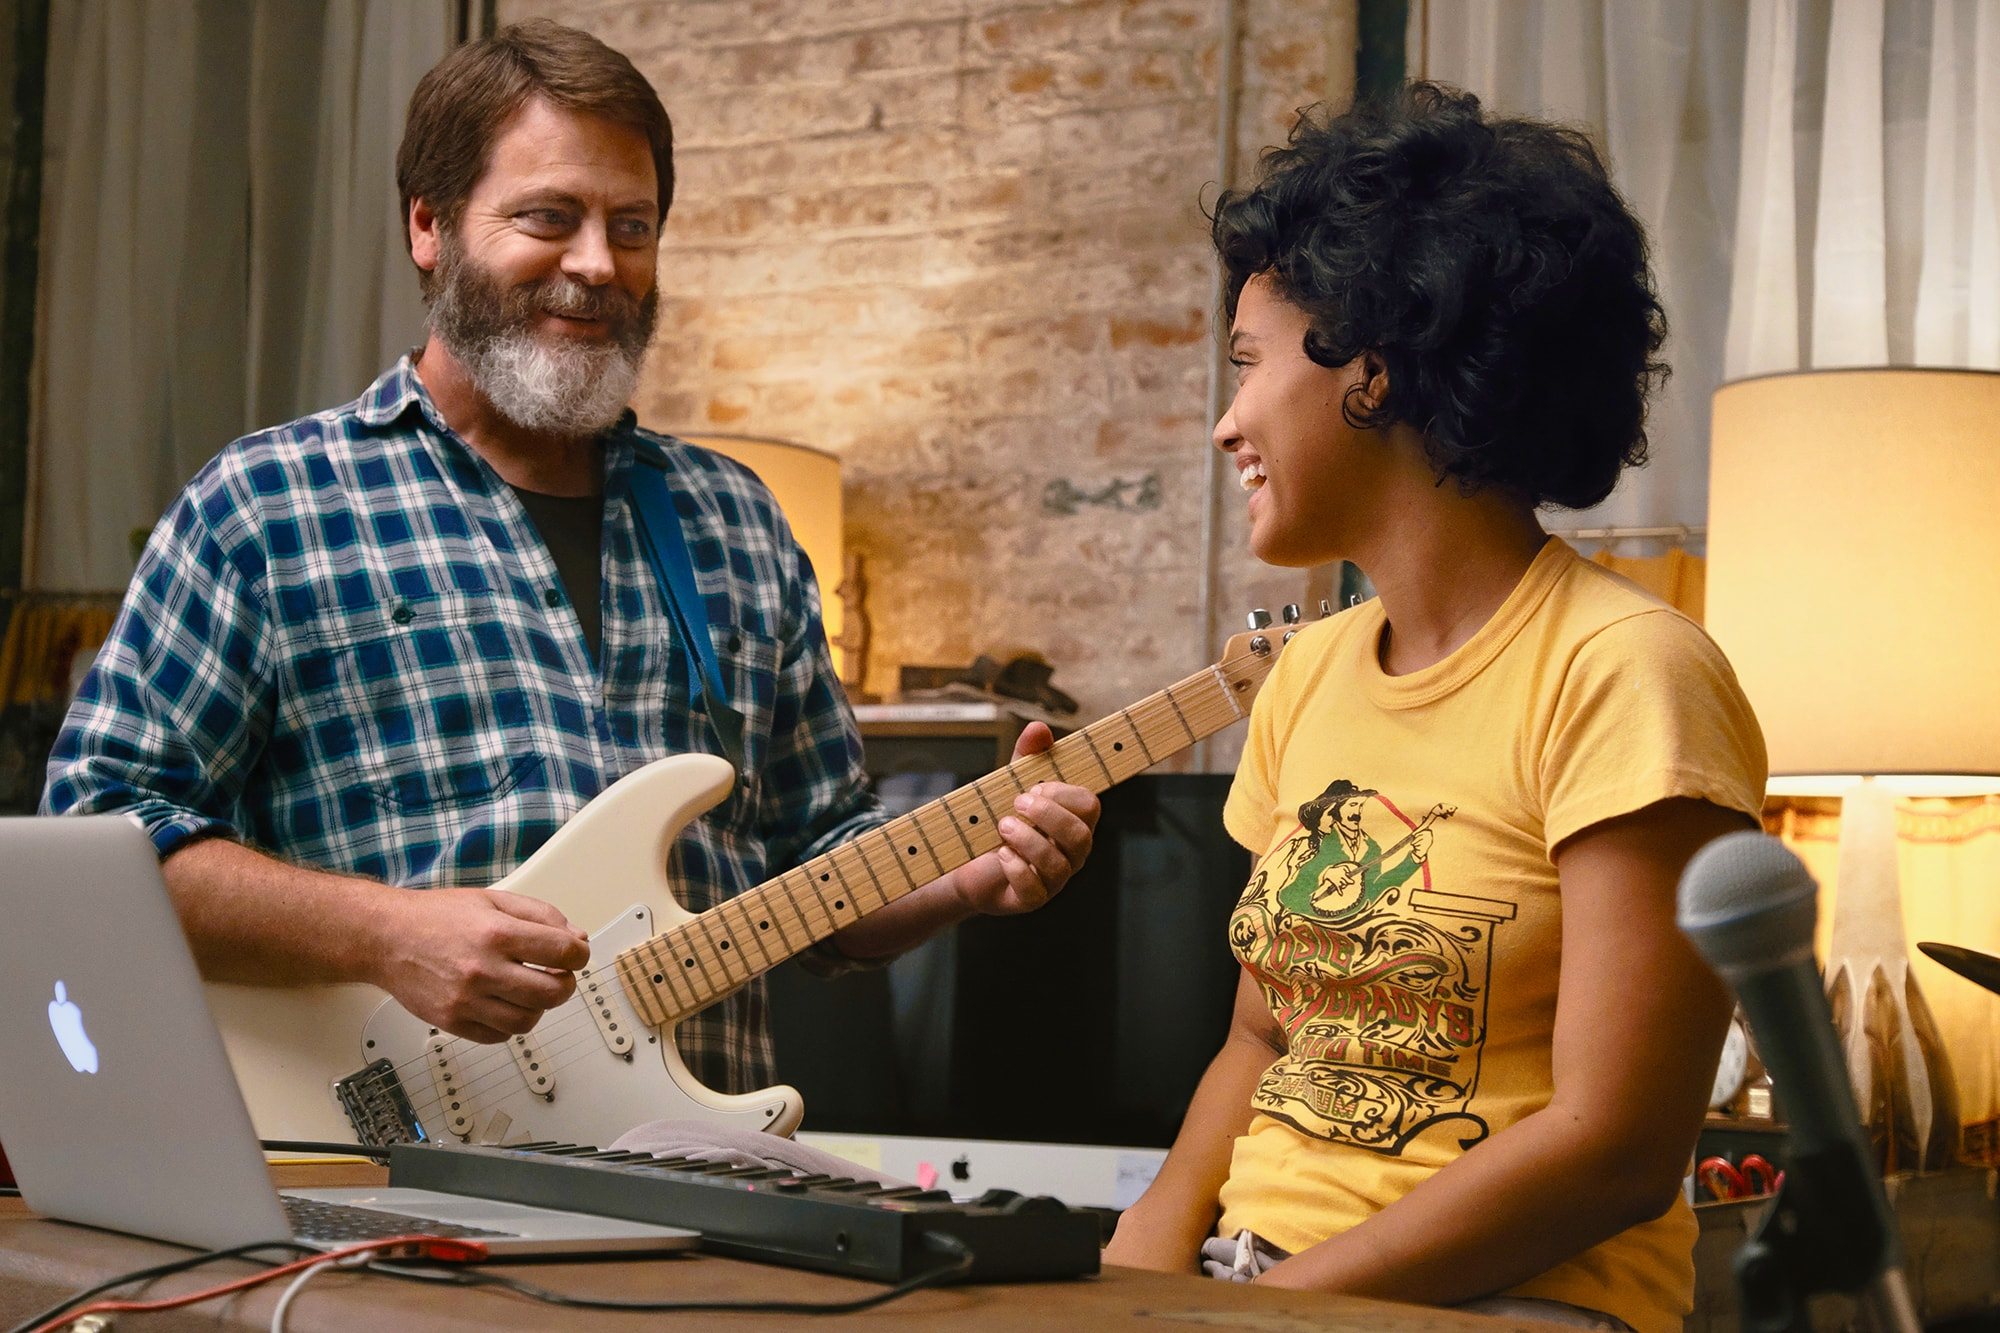 Frank (Nick Offerman) and his daughter Sam (Kiersey Clemons) create a Spotify hit.